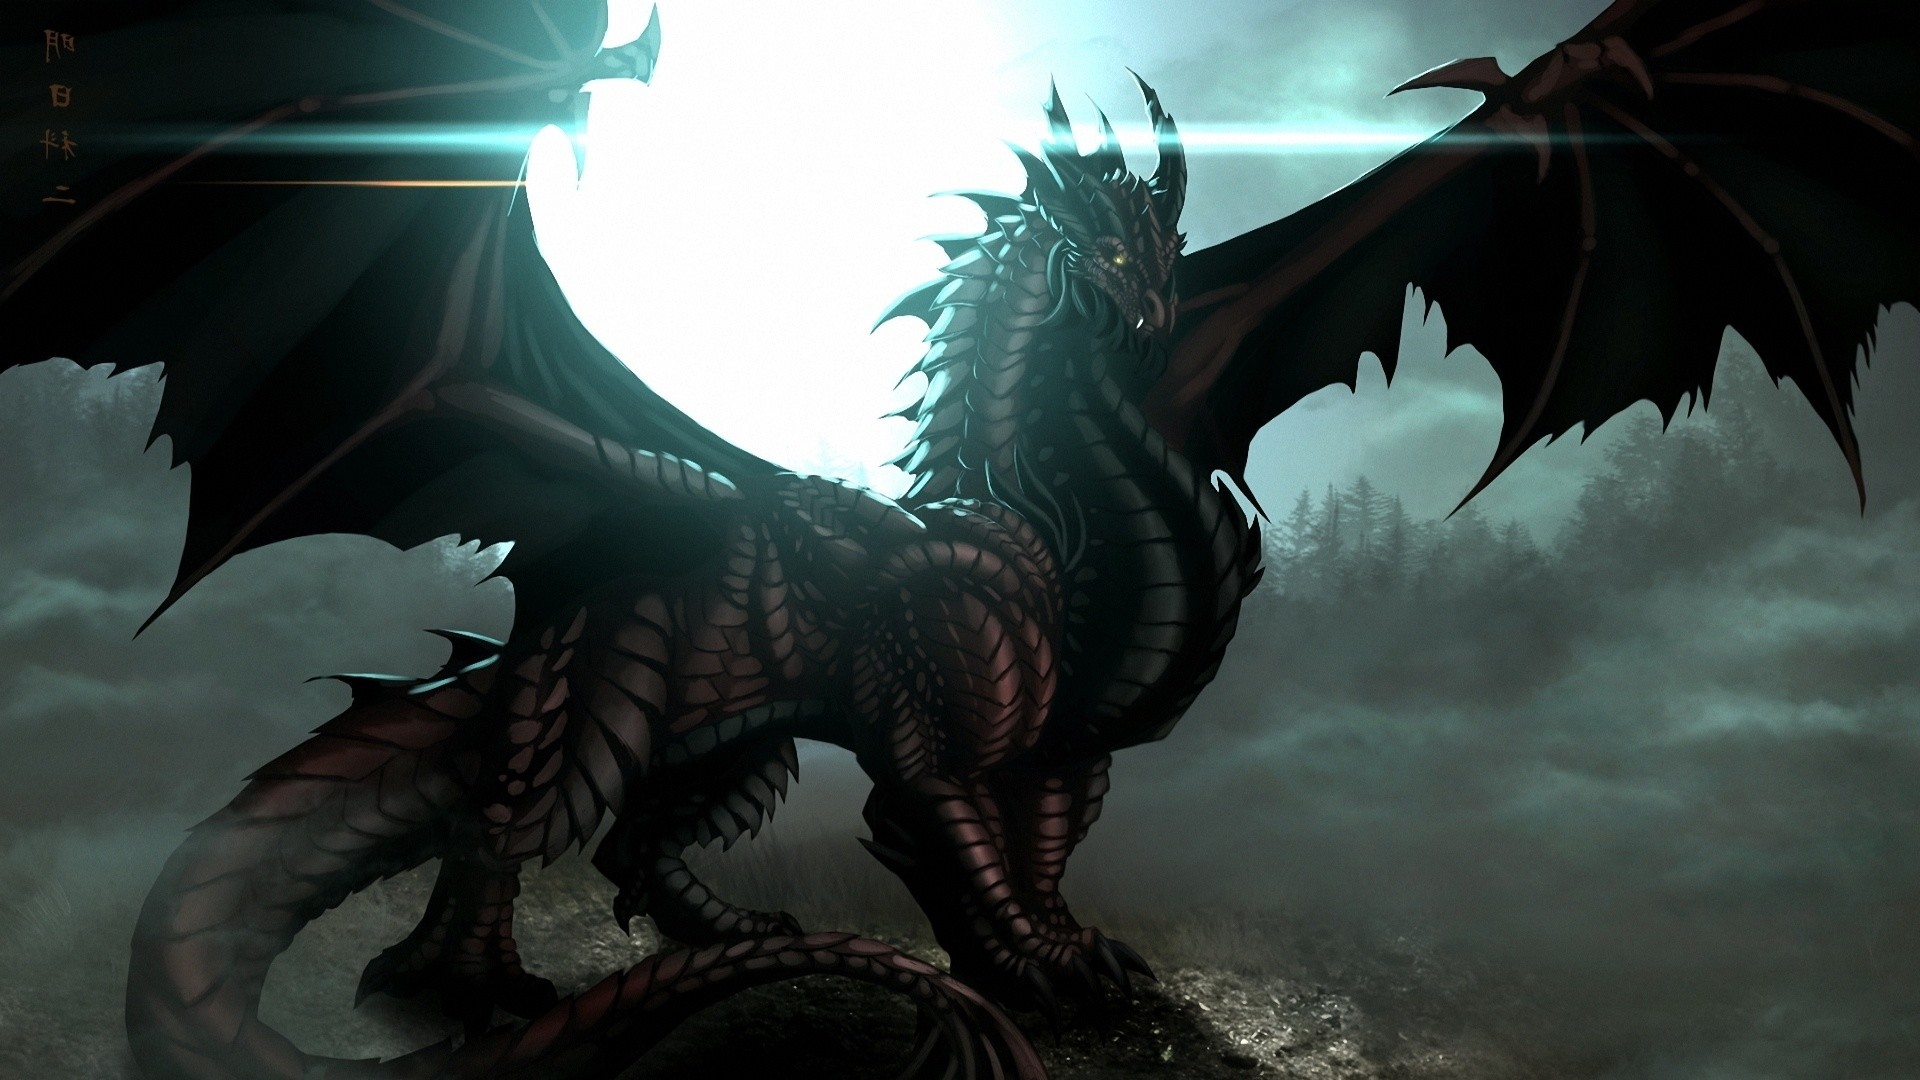 Collection of Black Dragon Wallpaper Hd on Spyder Wallpapers